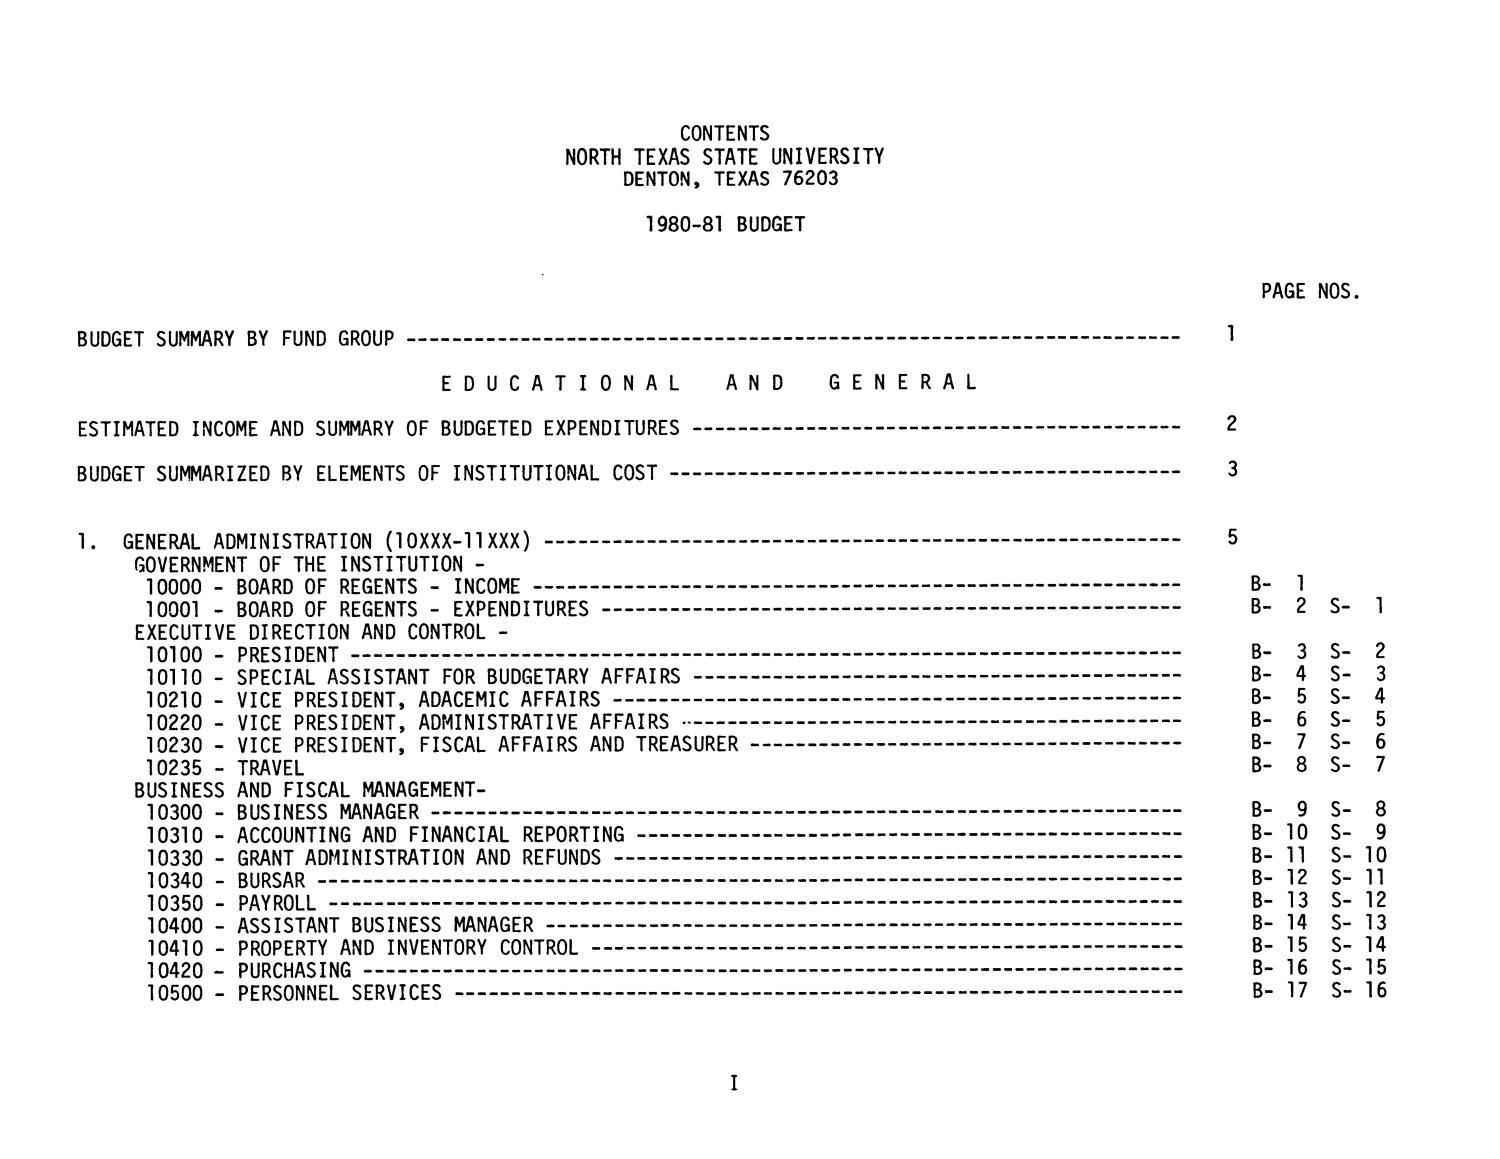 North Texas State University Budget: 1980-1981                                                                                                      I